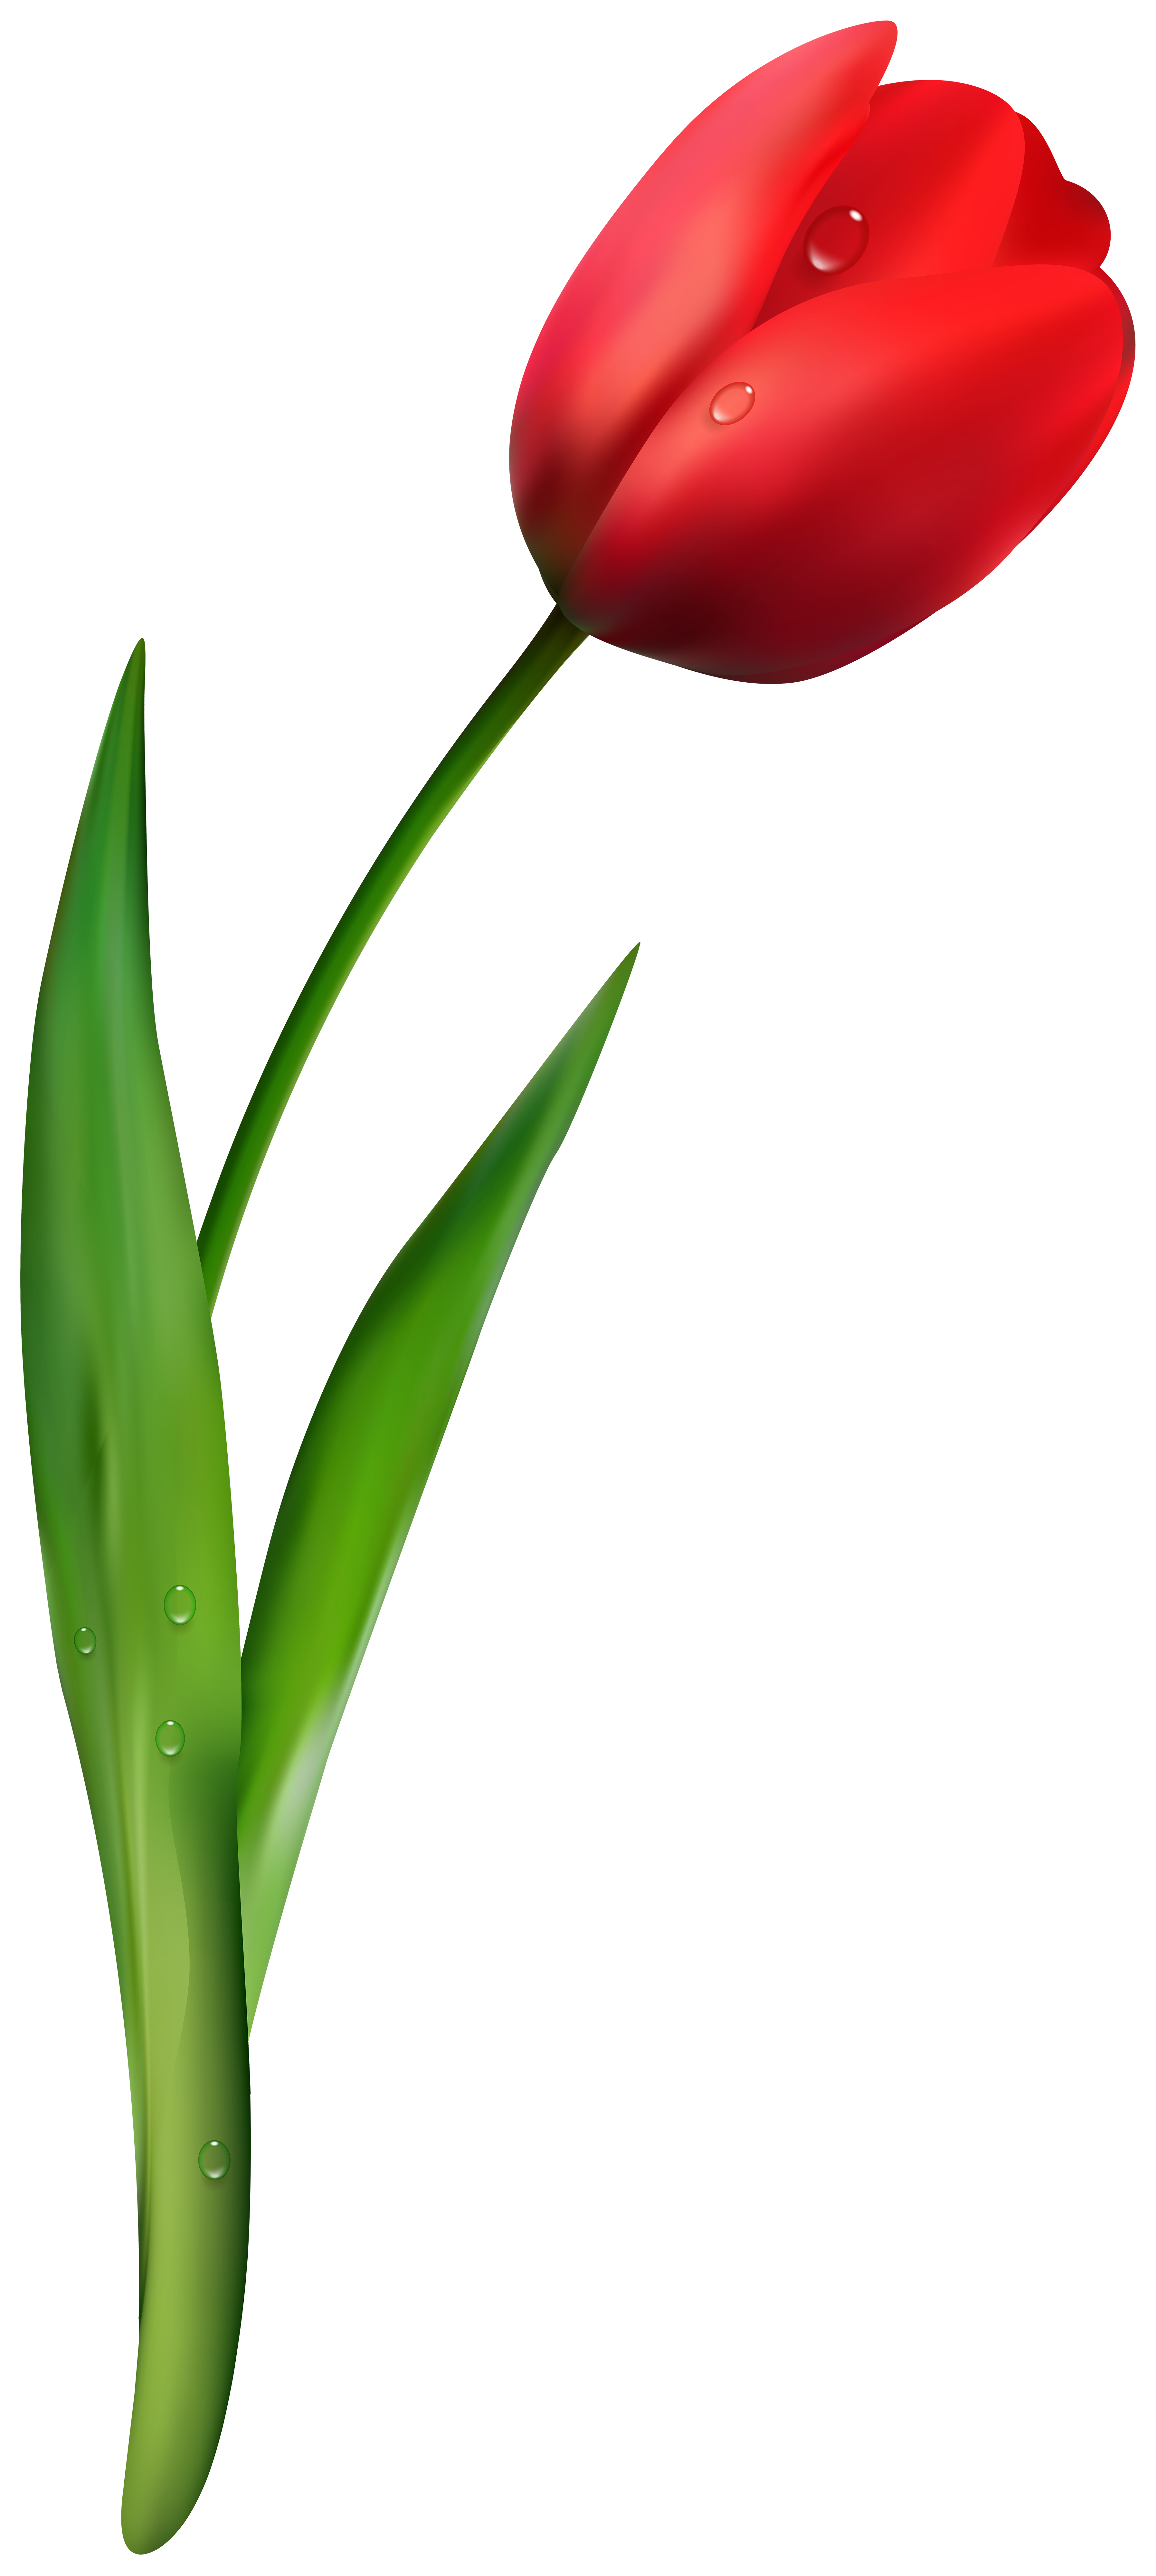 Red tulip clipart image download Red Tulip Flower Transparent Image   Gallery Yopriceville ... image download